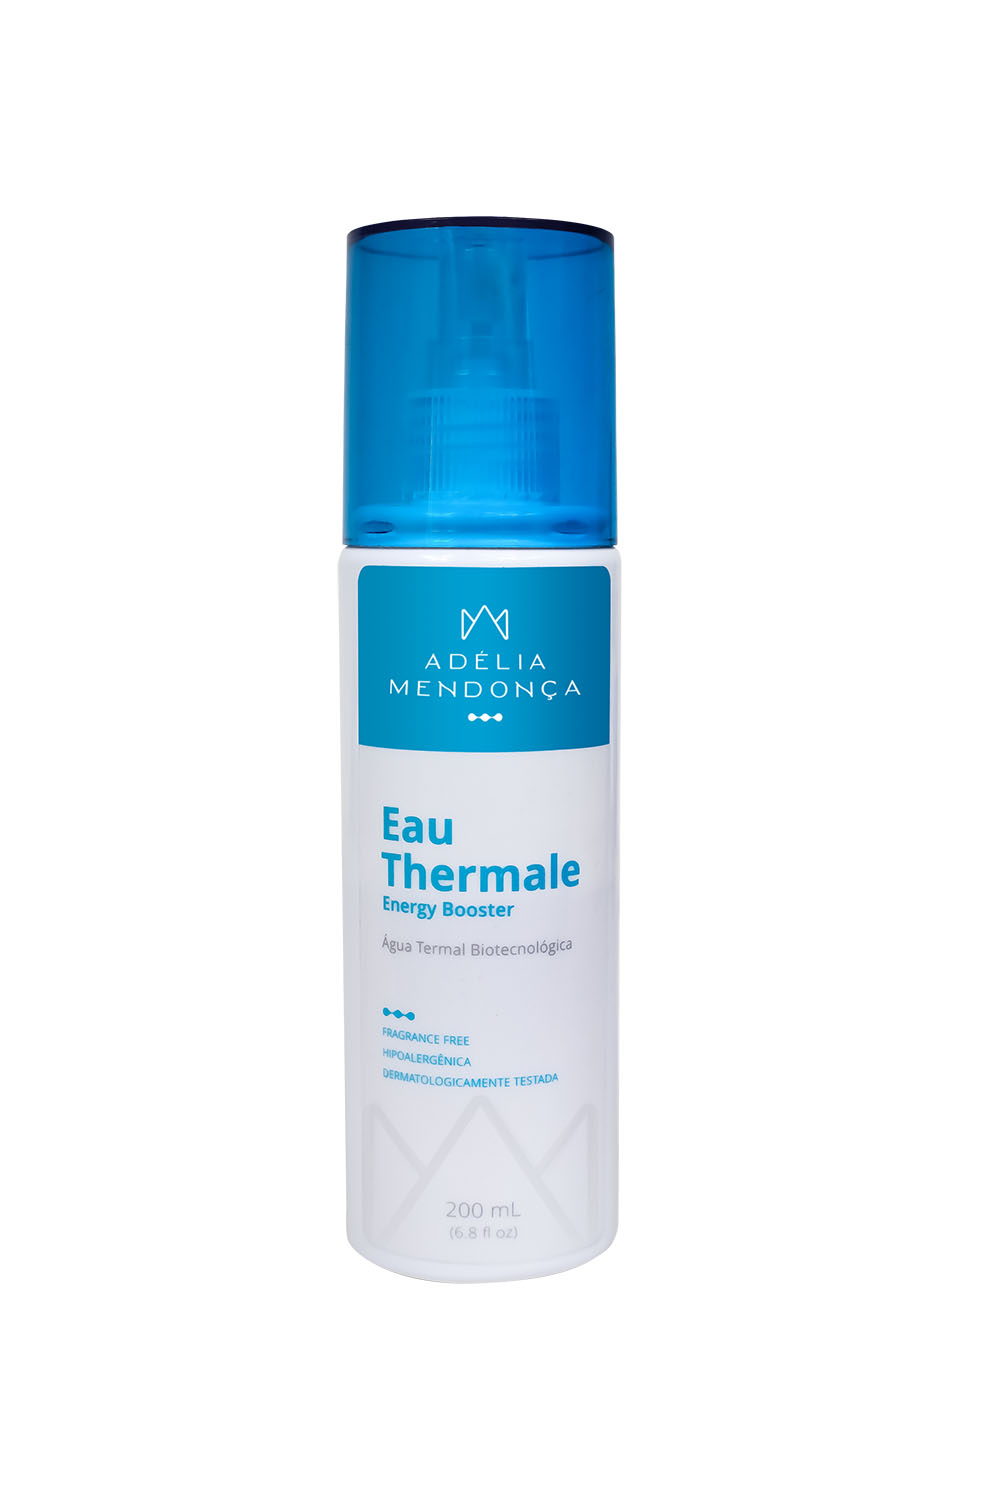 Energy Booster Eau Thermale